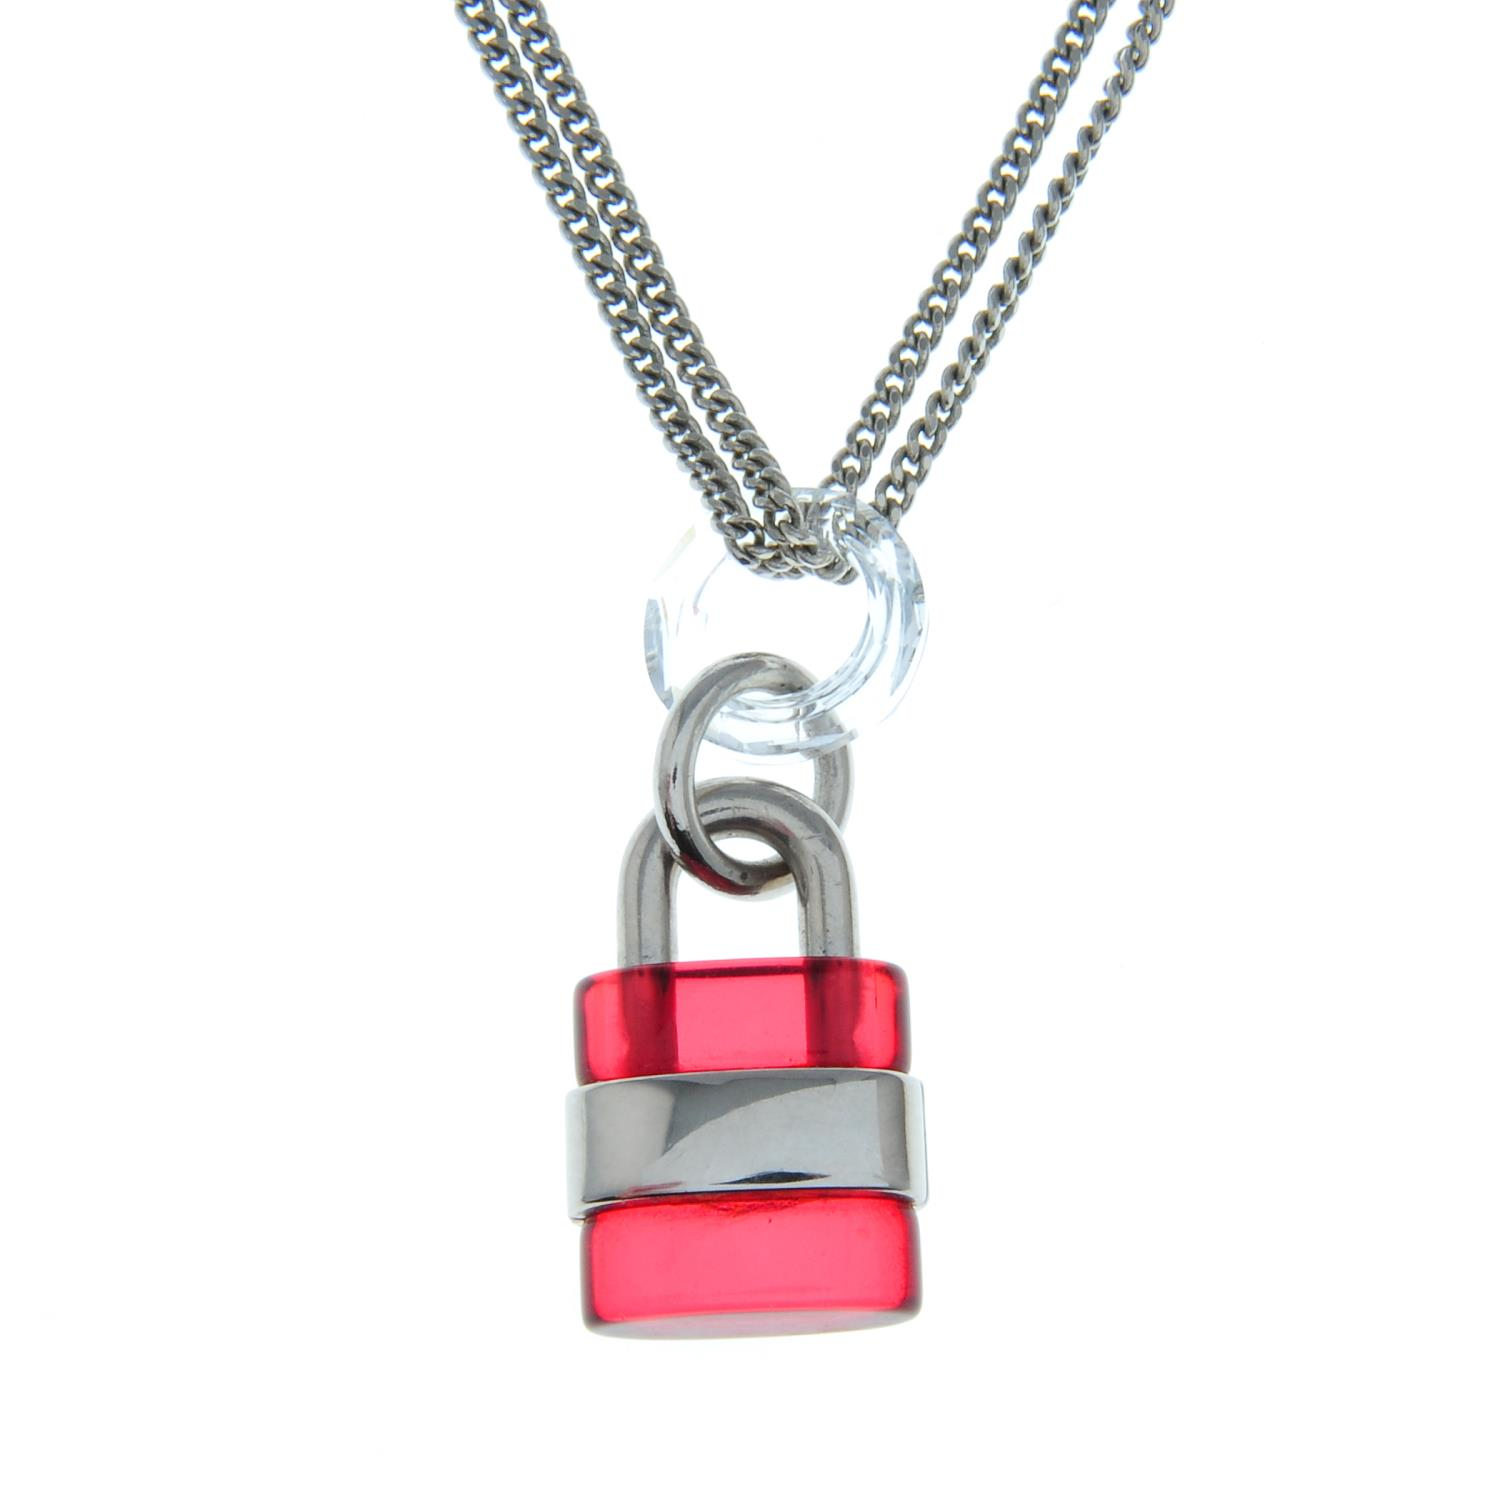 A red padlock necklace, by Chloé. - Image 2 of 3